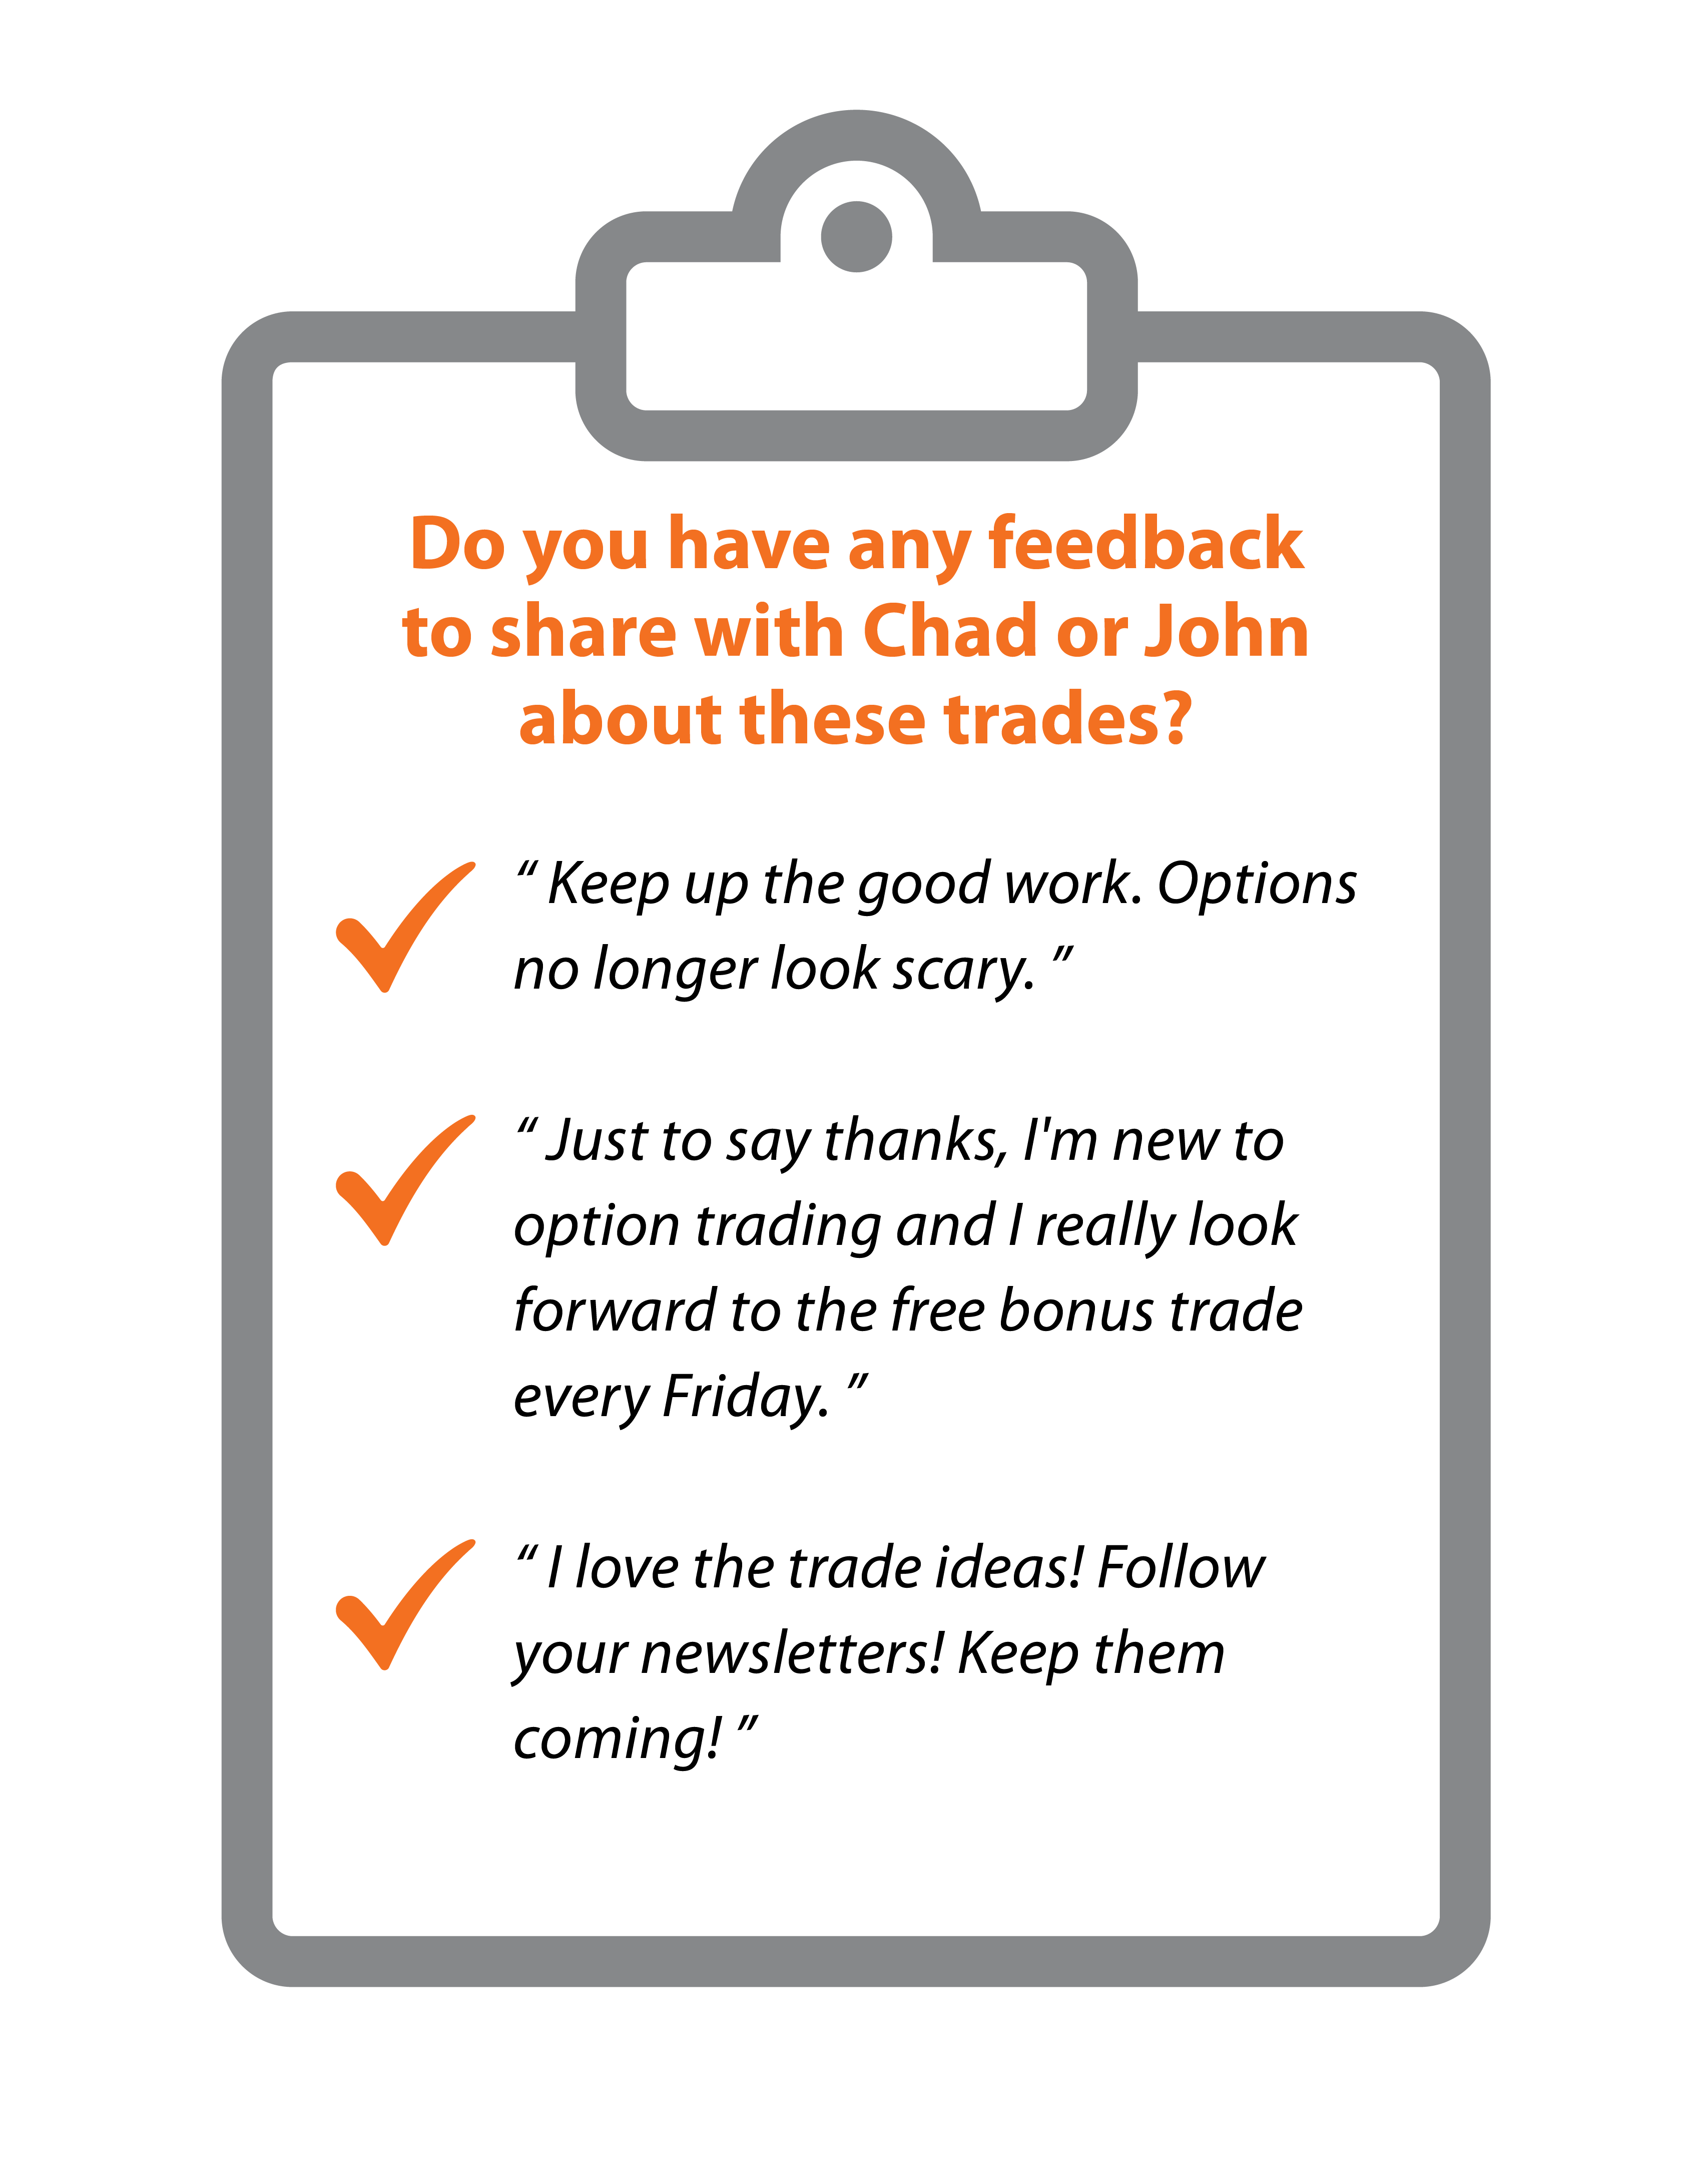 Positive survey responses to Chad and John's options ideas